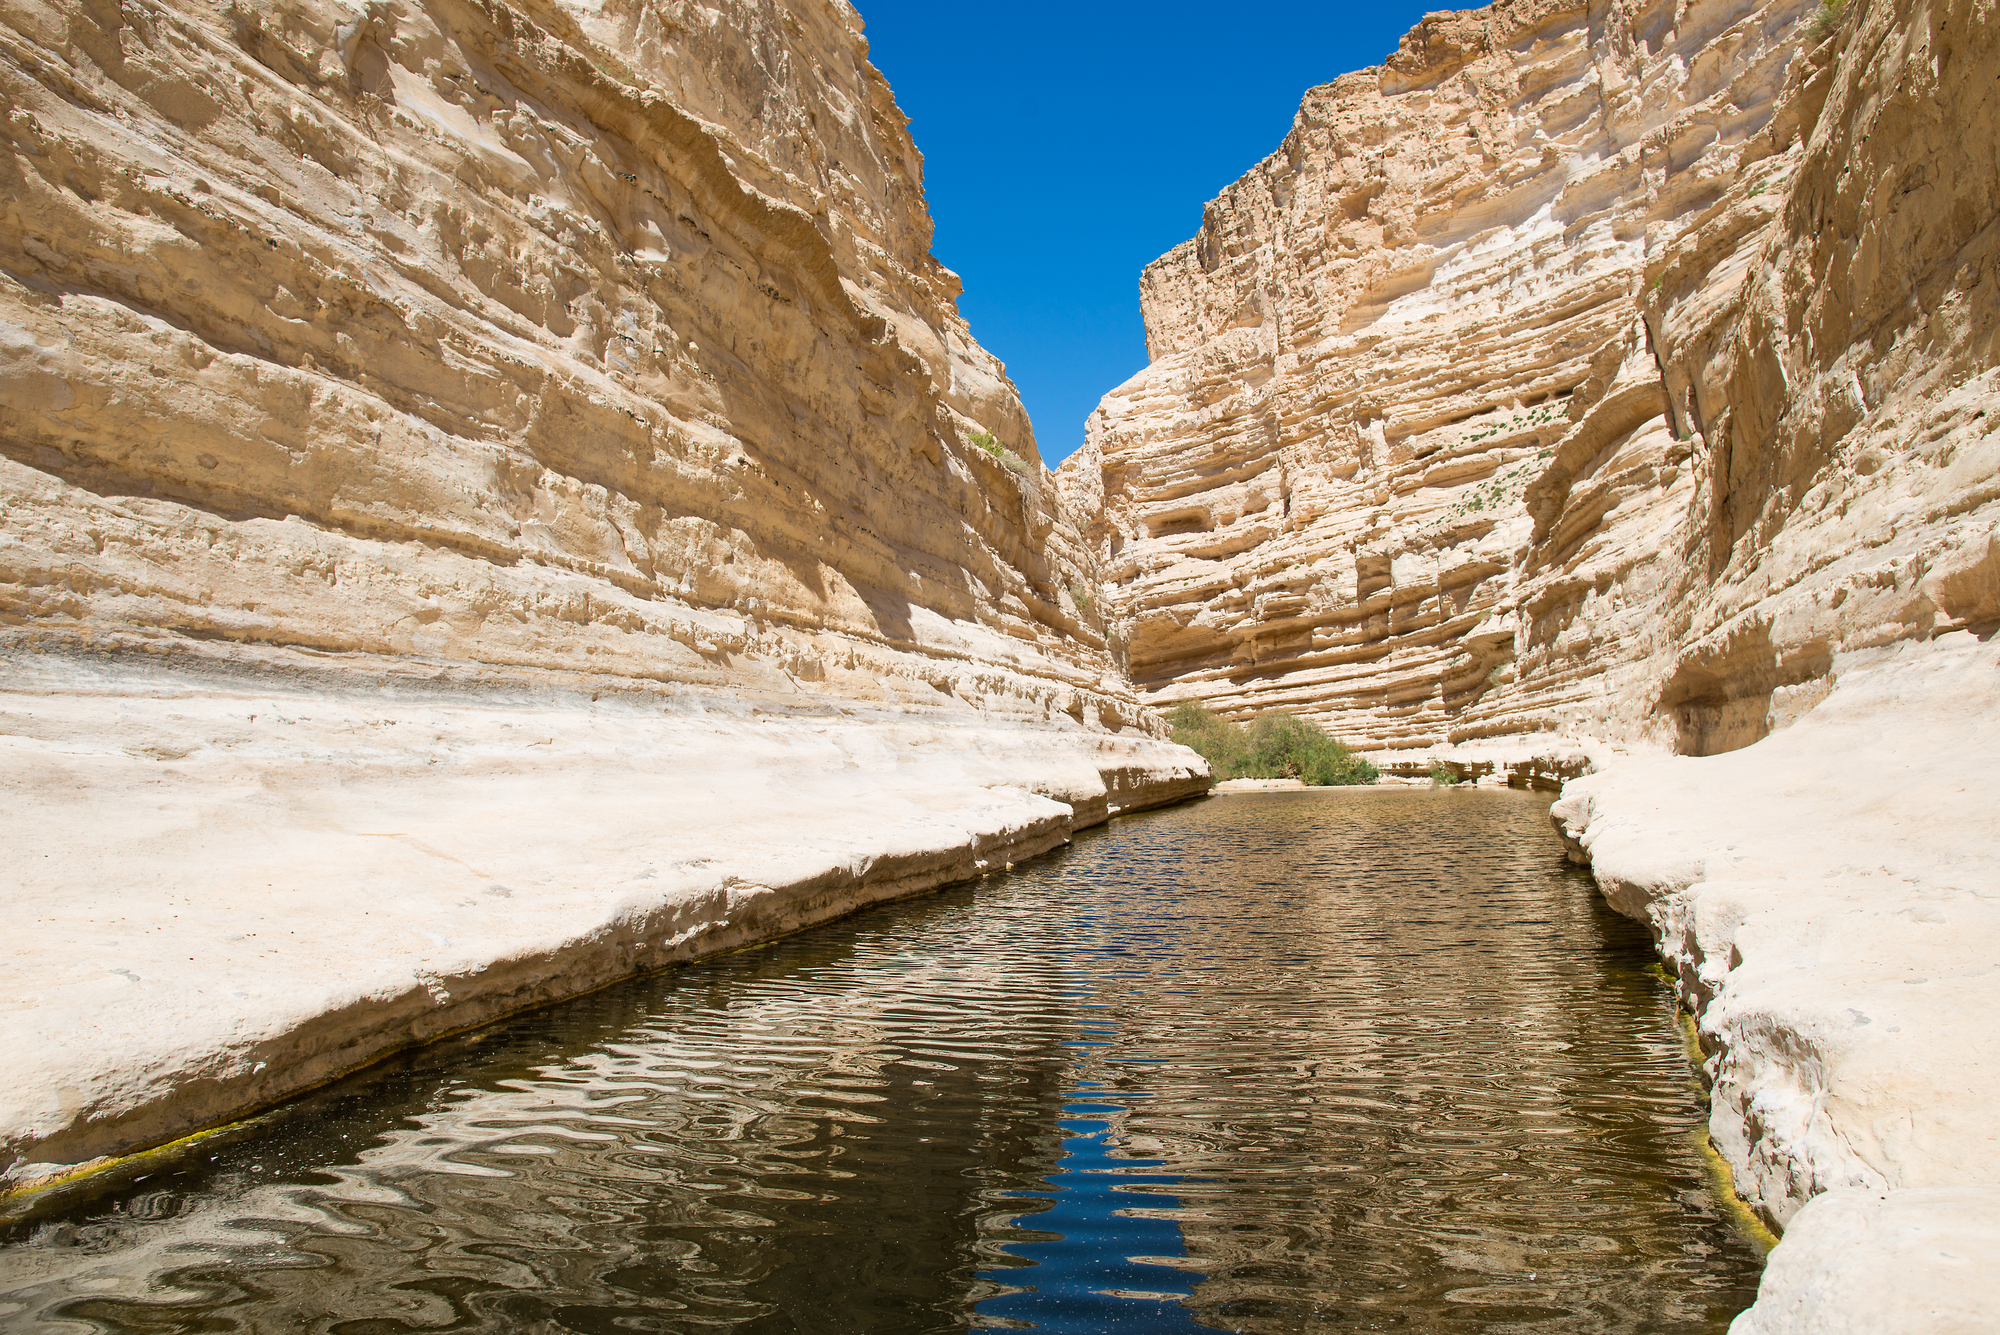 Canyon Ein-Avdat in the Negev desert. Fresh water flowing in the river canyon. Sandstone walls.